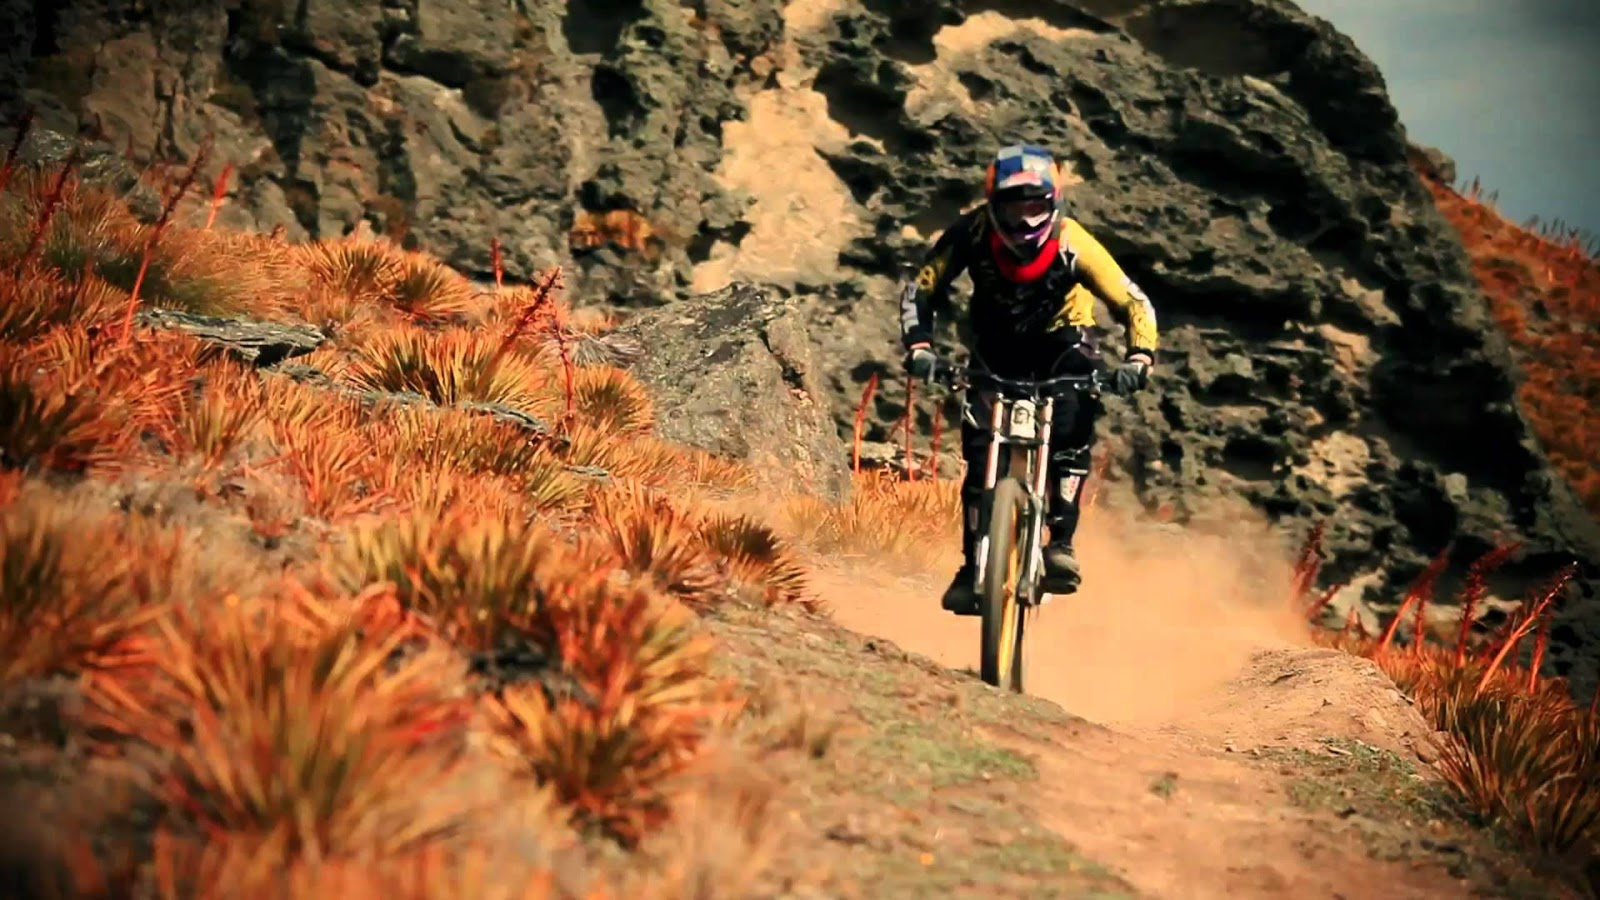 Downhill Images Photo Pictures Hd Wallpaper Olahraga Hd